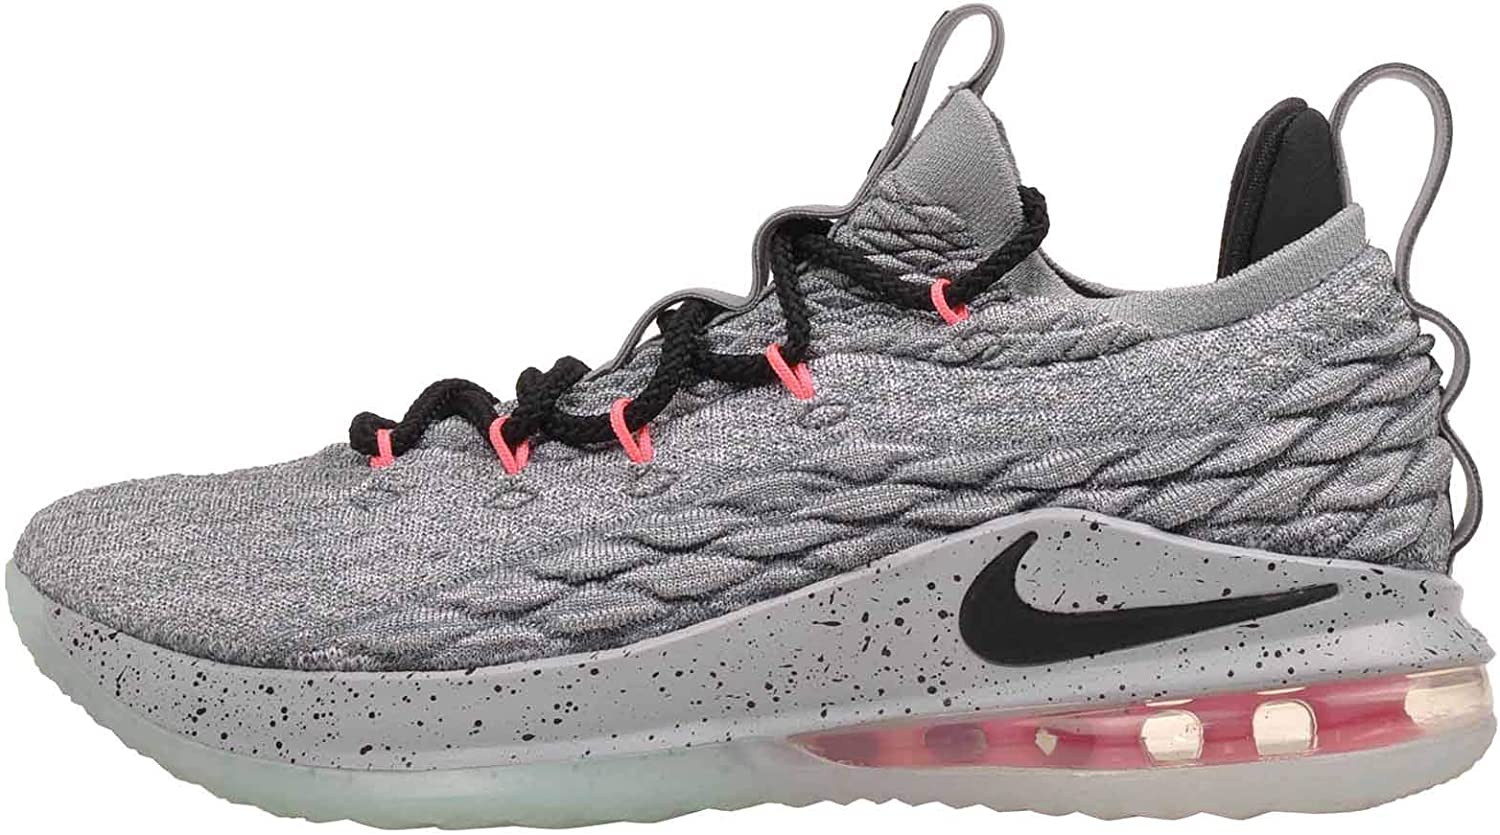 Nike Lebron 15 Low - Men's Lebron James Nylon Basketball shoes 9 D(M) US Grey